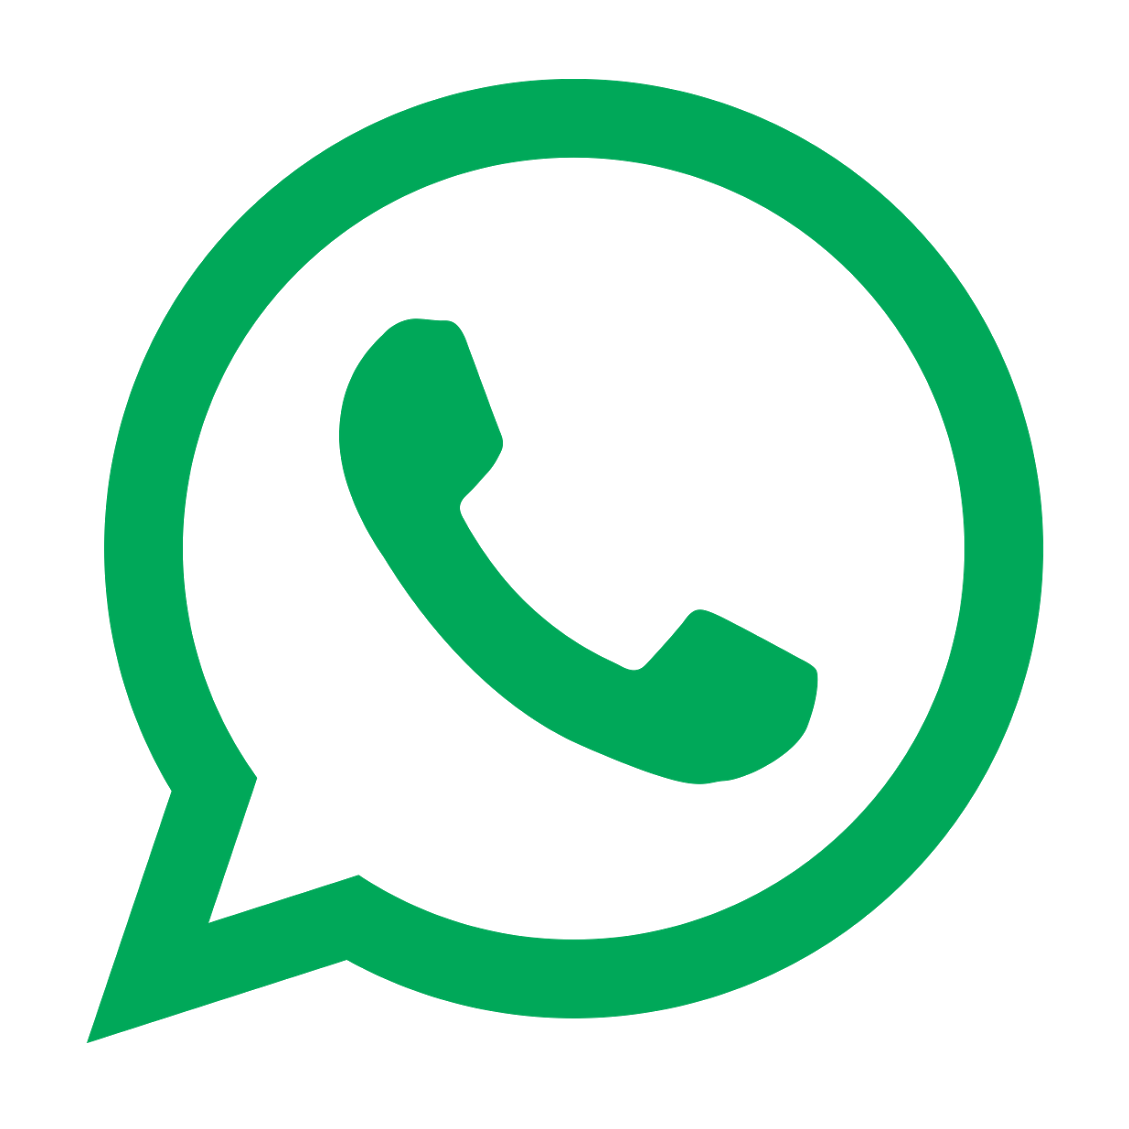 Whatsapp-logo-vector-2.png